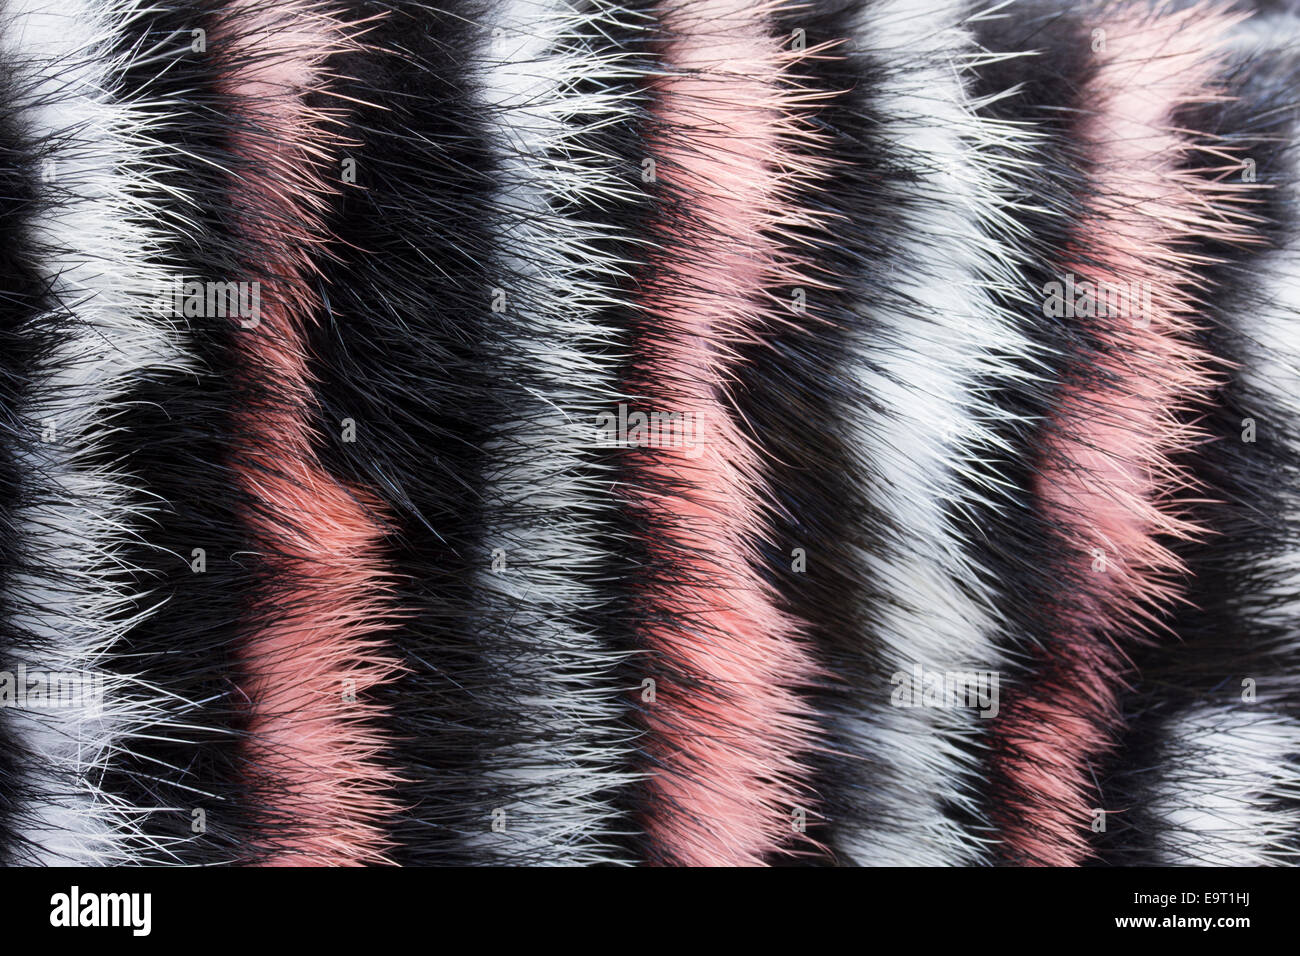 abstract painted fur background - Stock Image